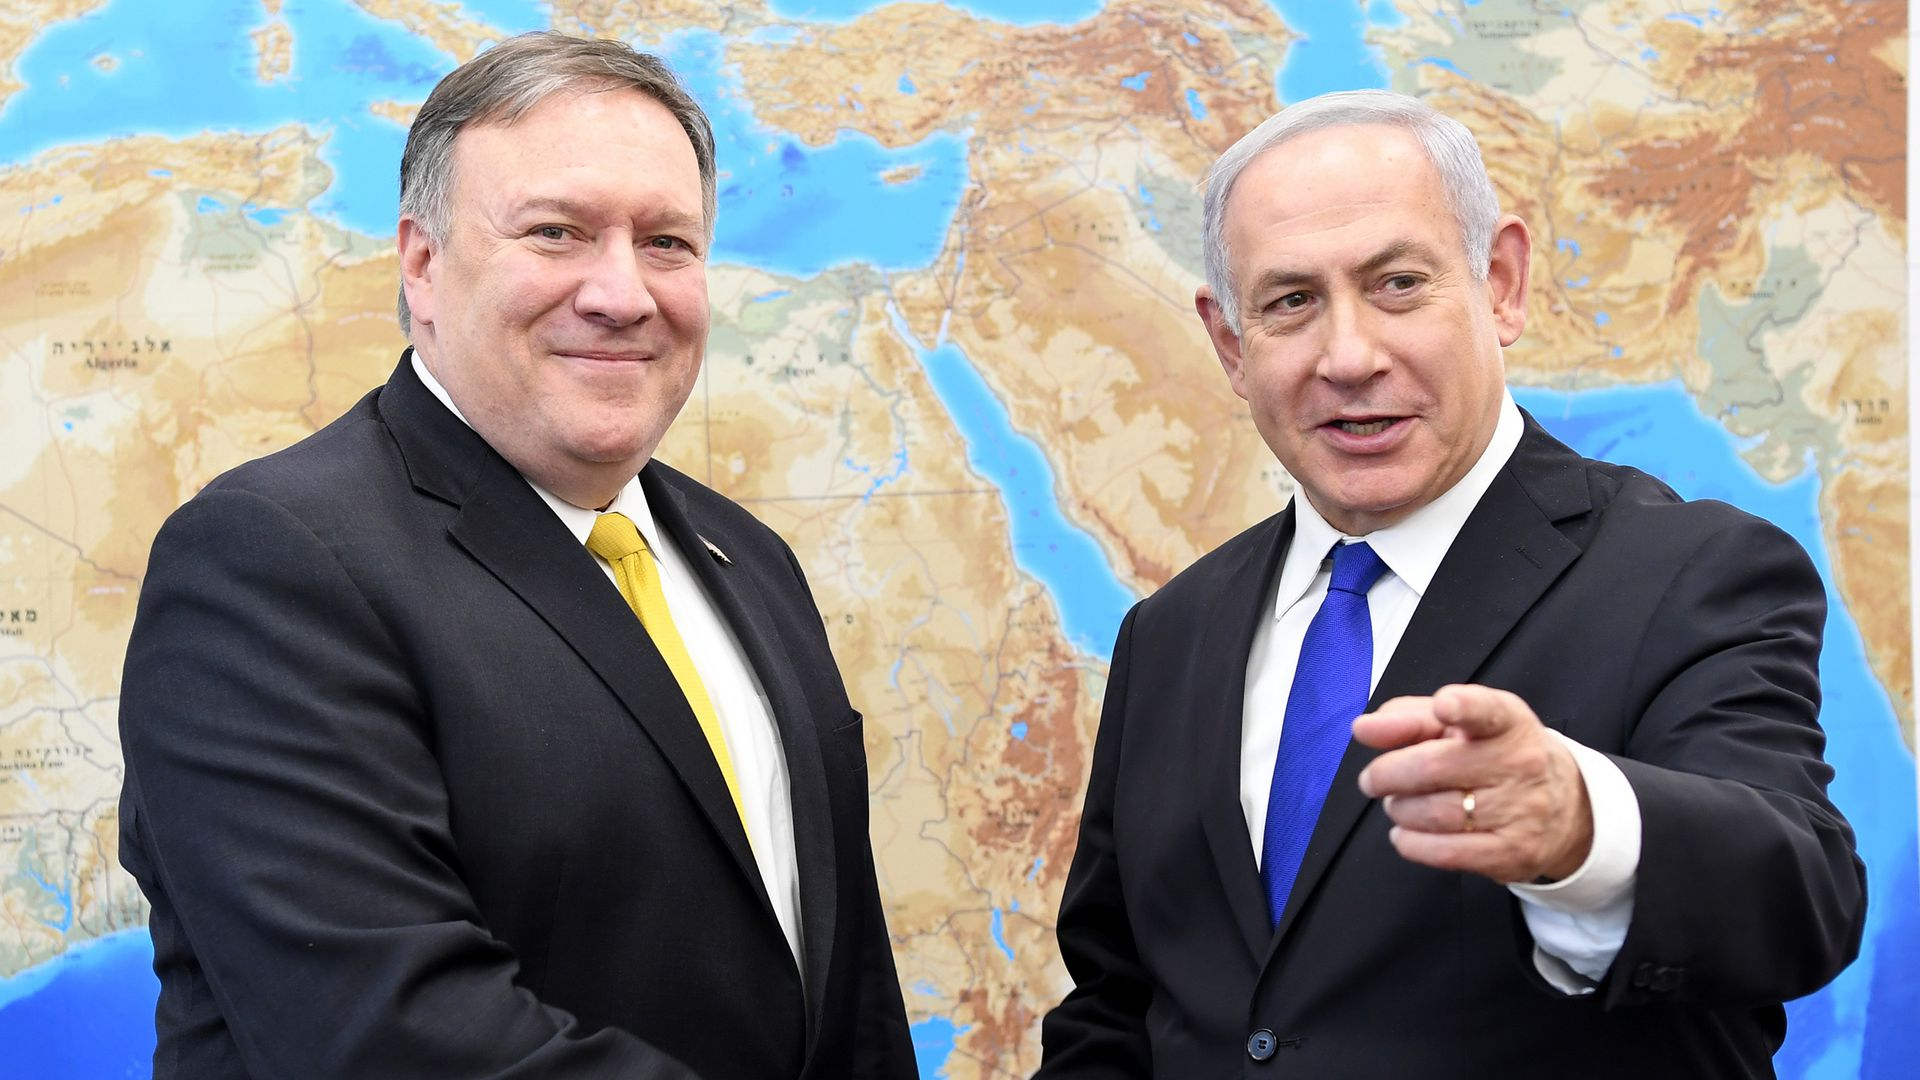 Afbeeldingsresultaat voor Mike Pompeo: The US Wants the Entire Middle East to Look Like Israel